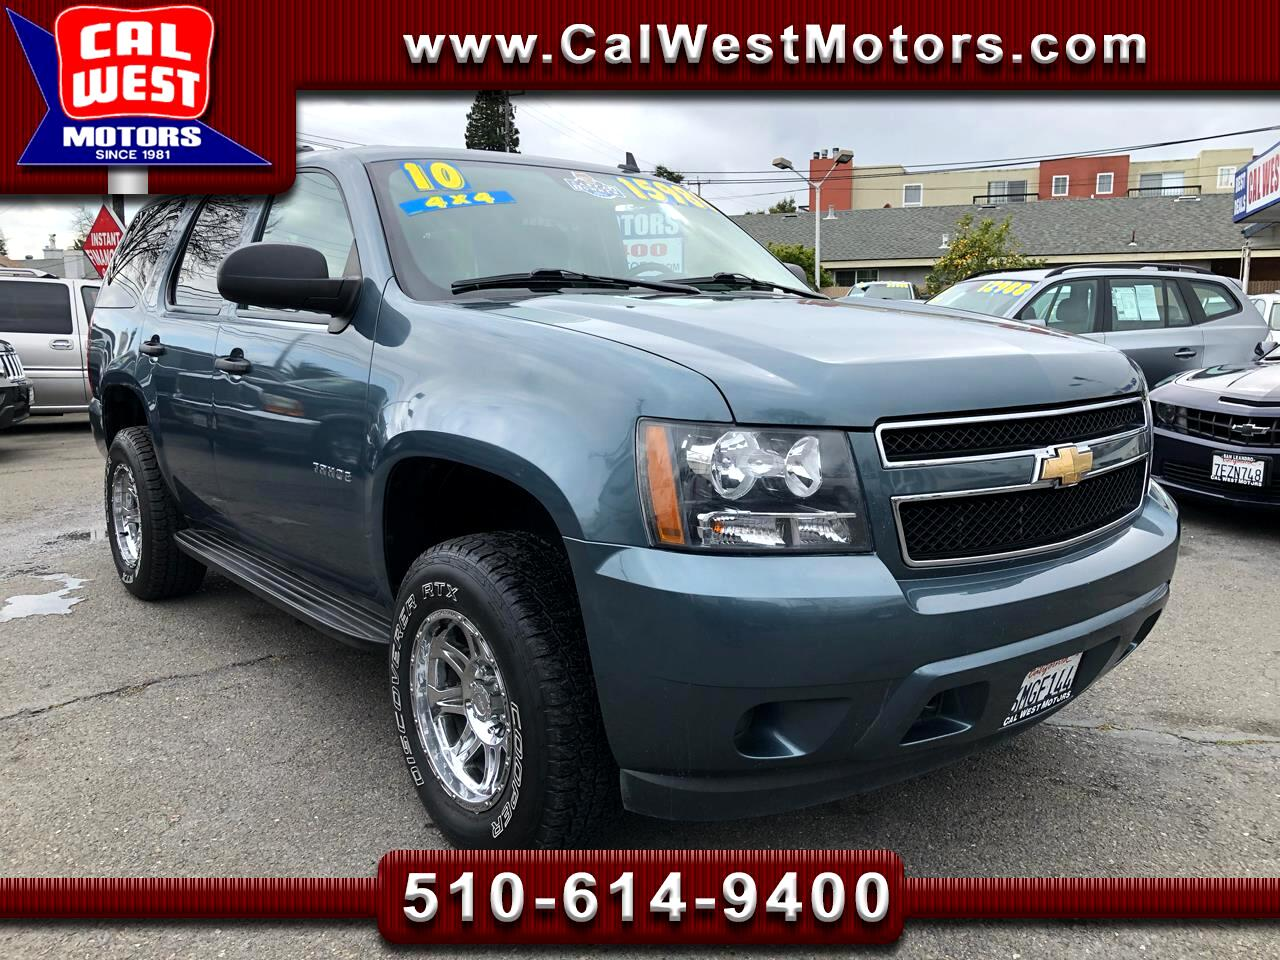 2010 Chevrolet Tahoe 4X4 3Rows Blu2th ProCompWhls 1Owner ExMtnce Nice